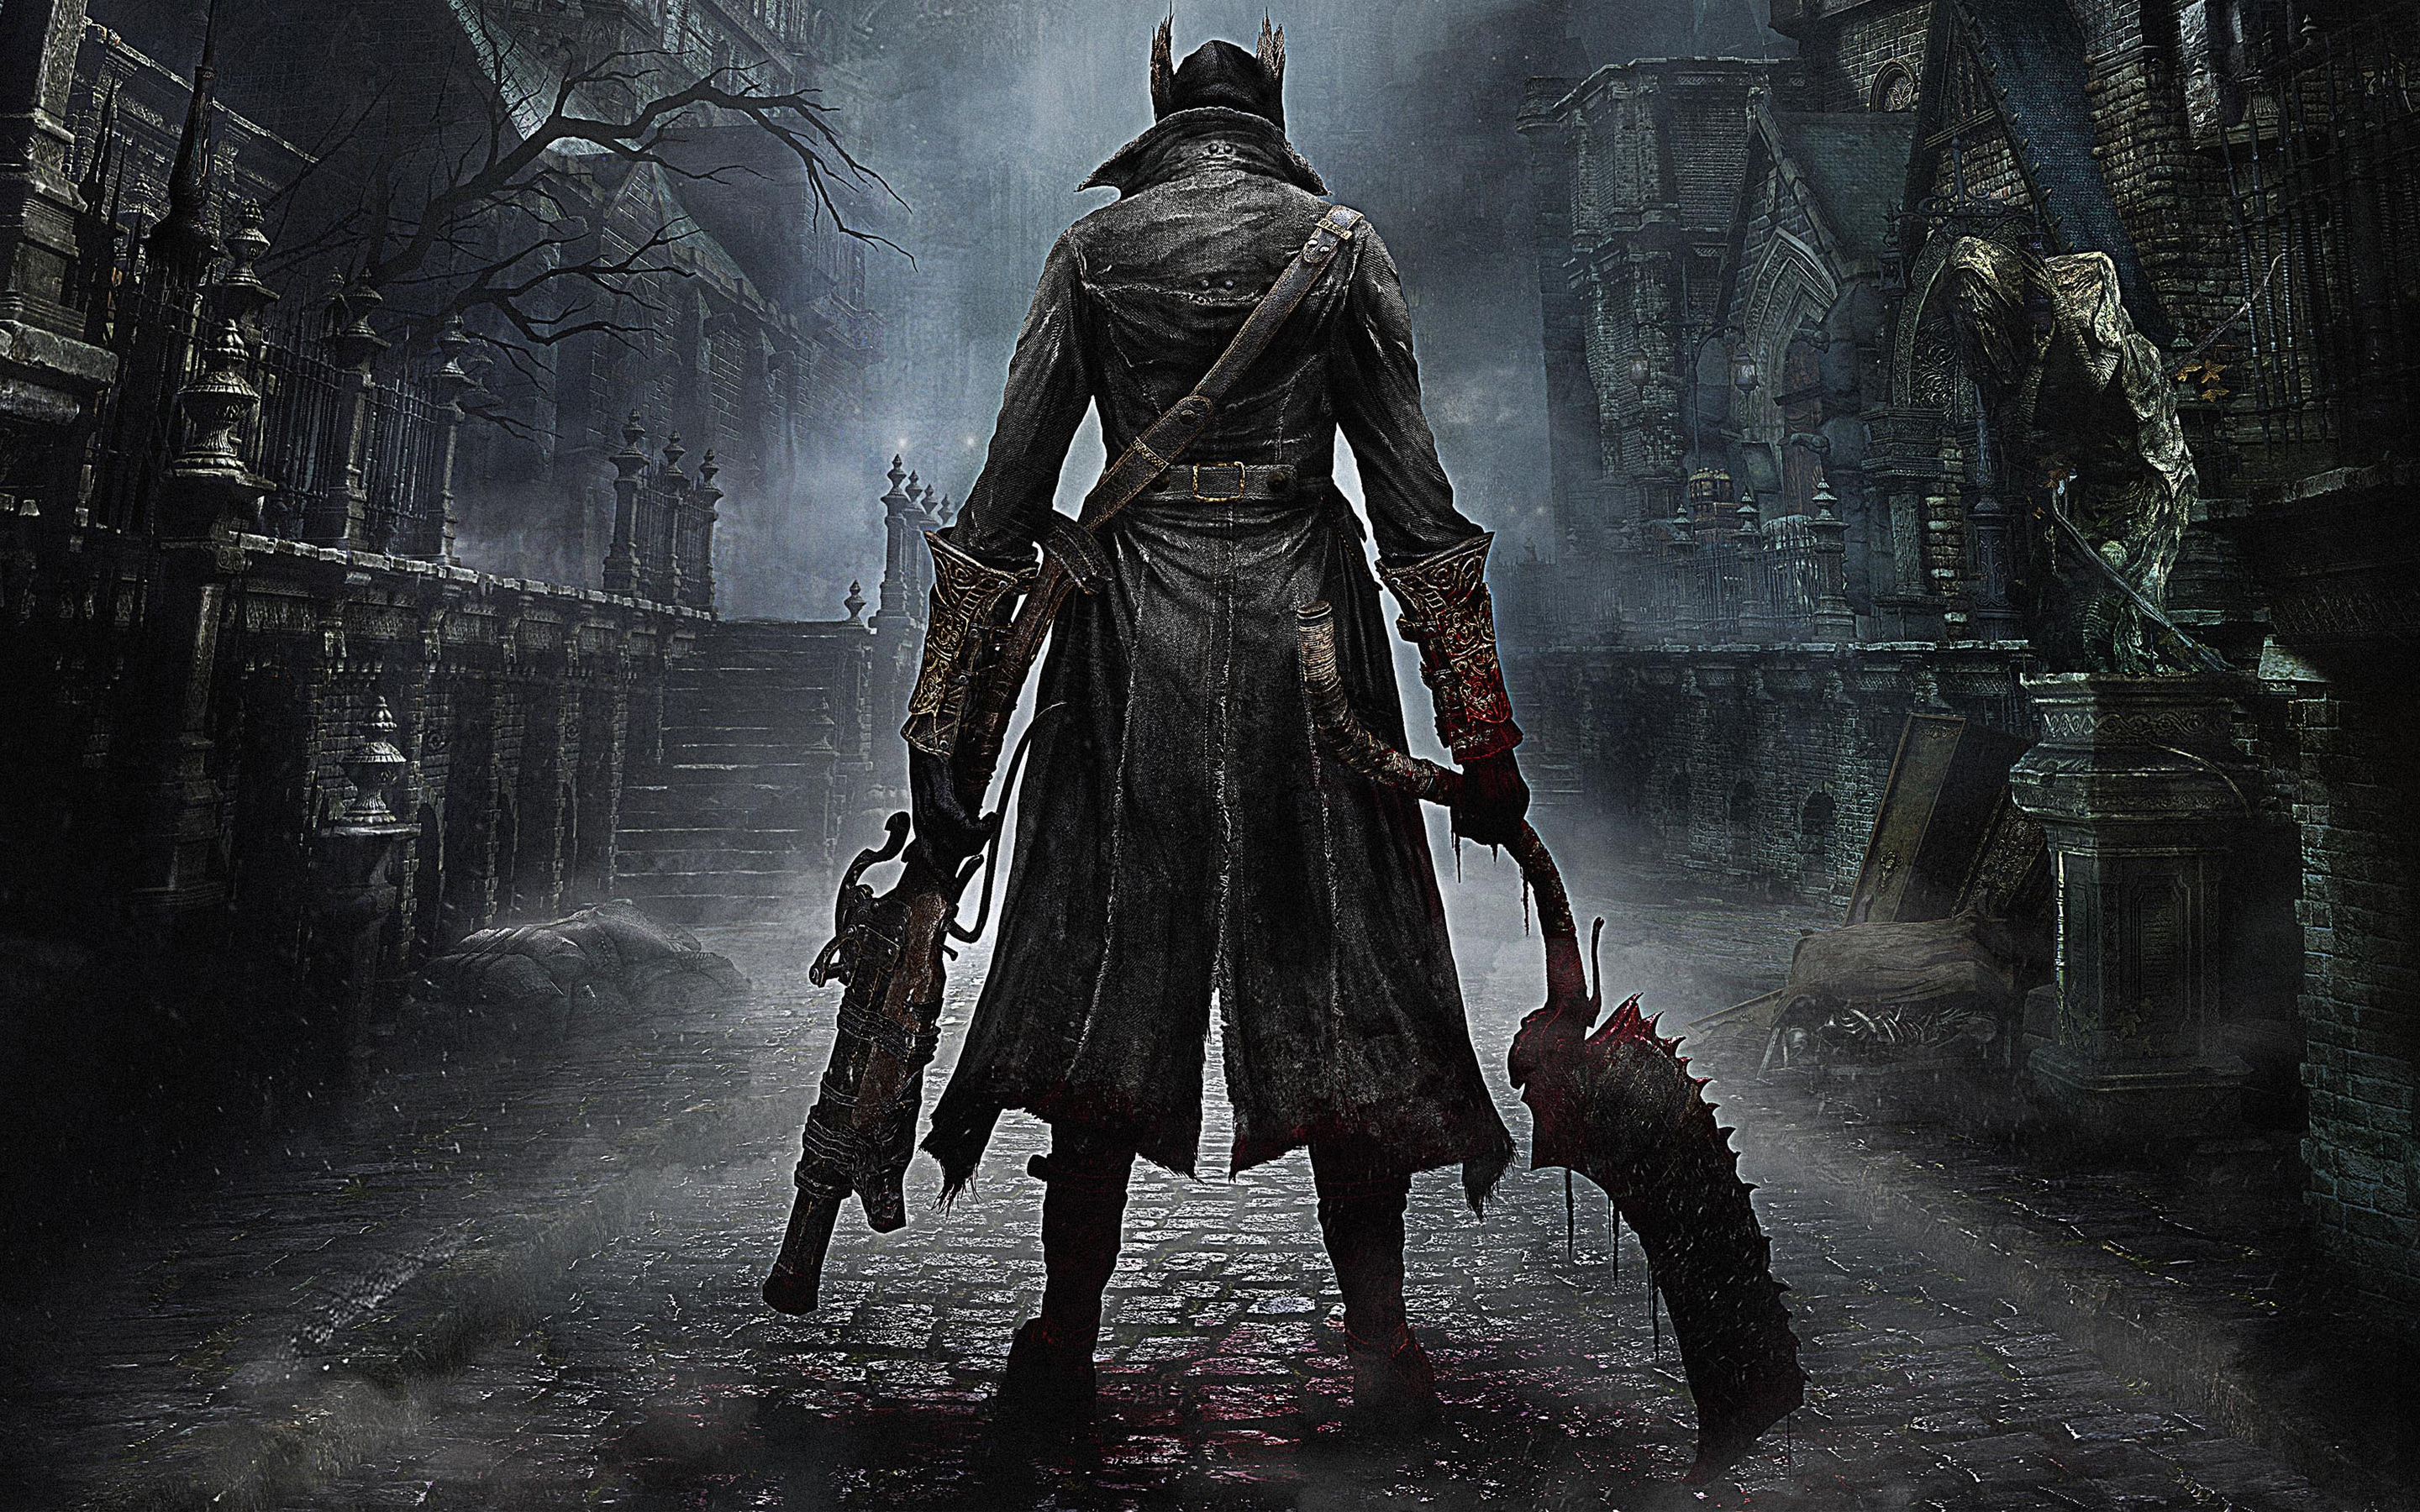 bloodborne ps4 game wallpapers | wallpapers hd